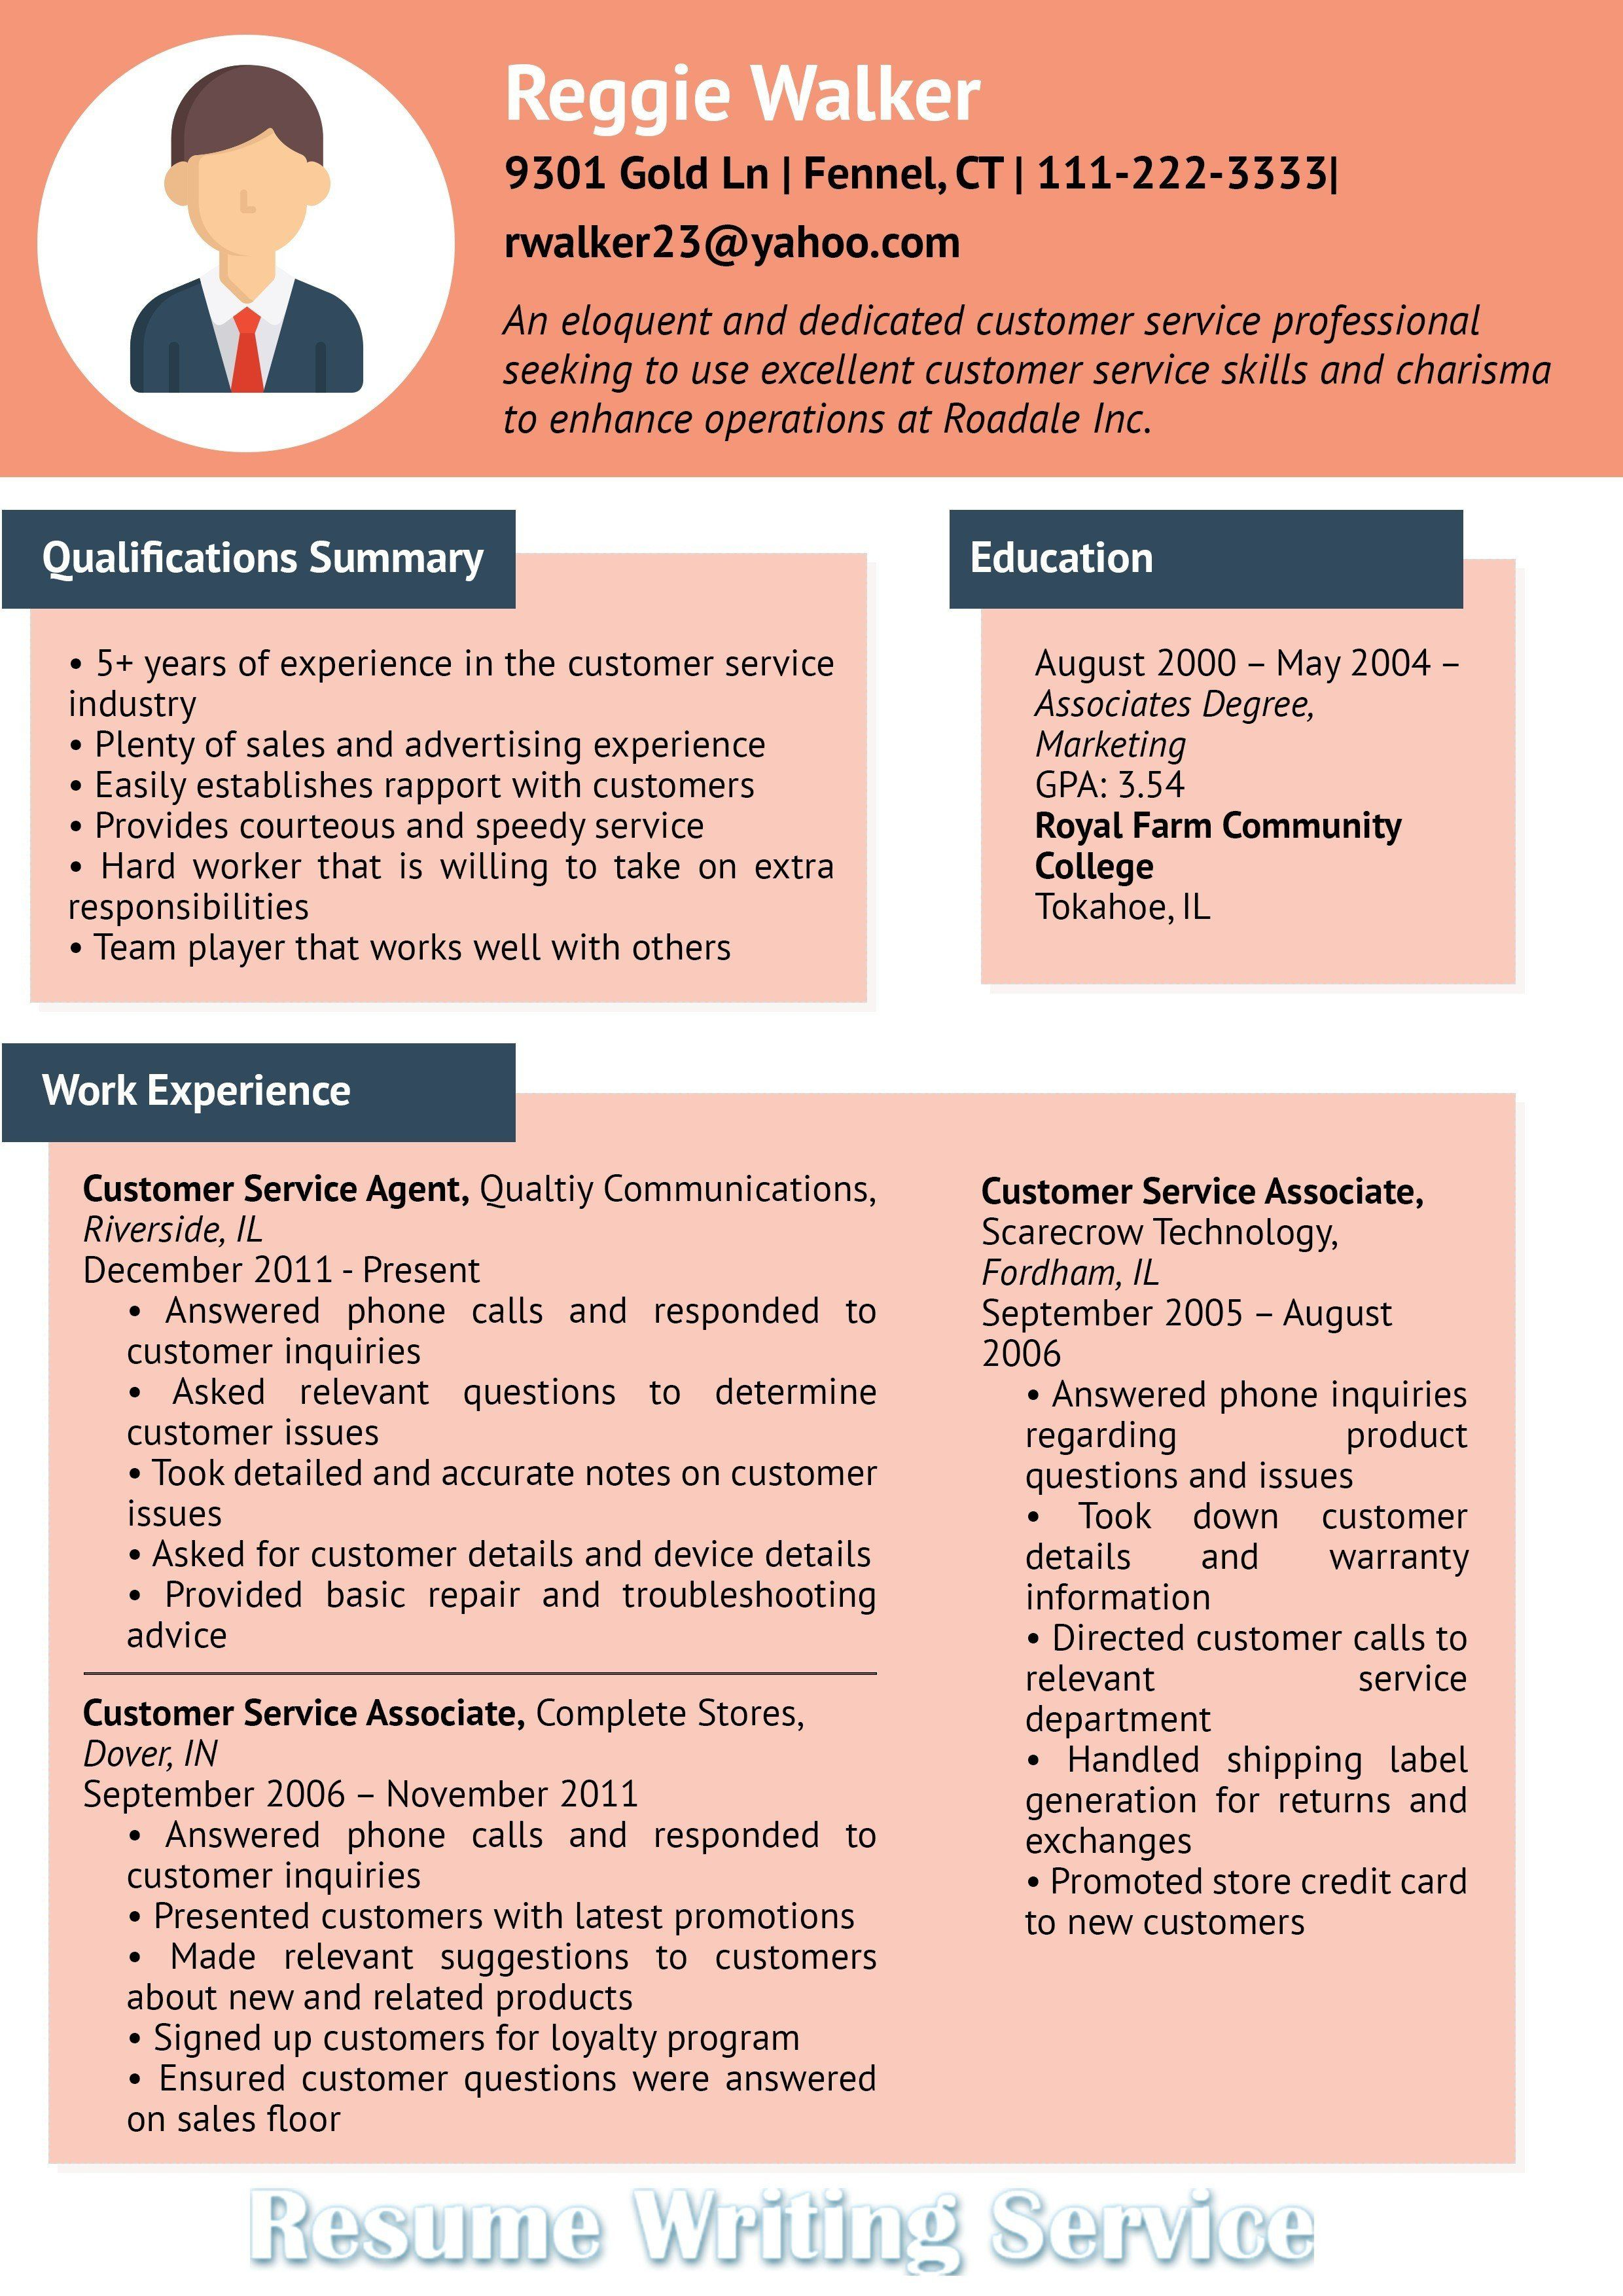 Are Resume Writing Services Worth It Luxury Customer Service Infographic Professional Re Resume Skills Professional Resume Writing Service Best Resume Format